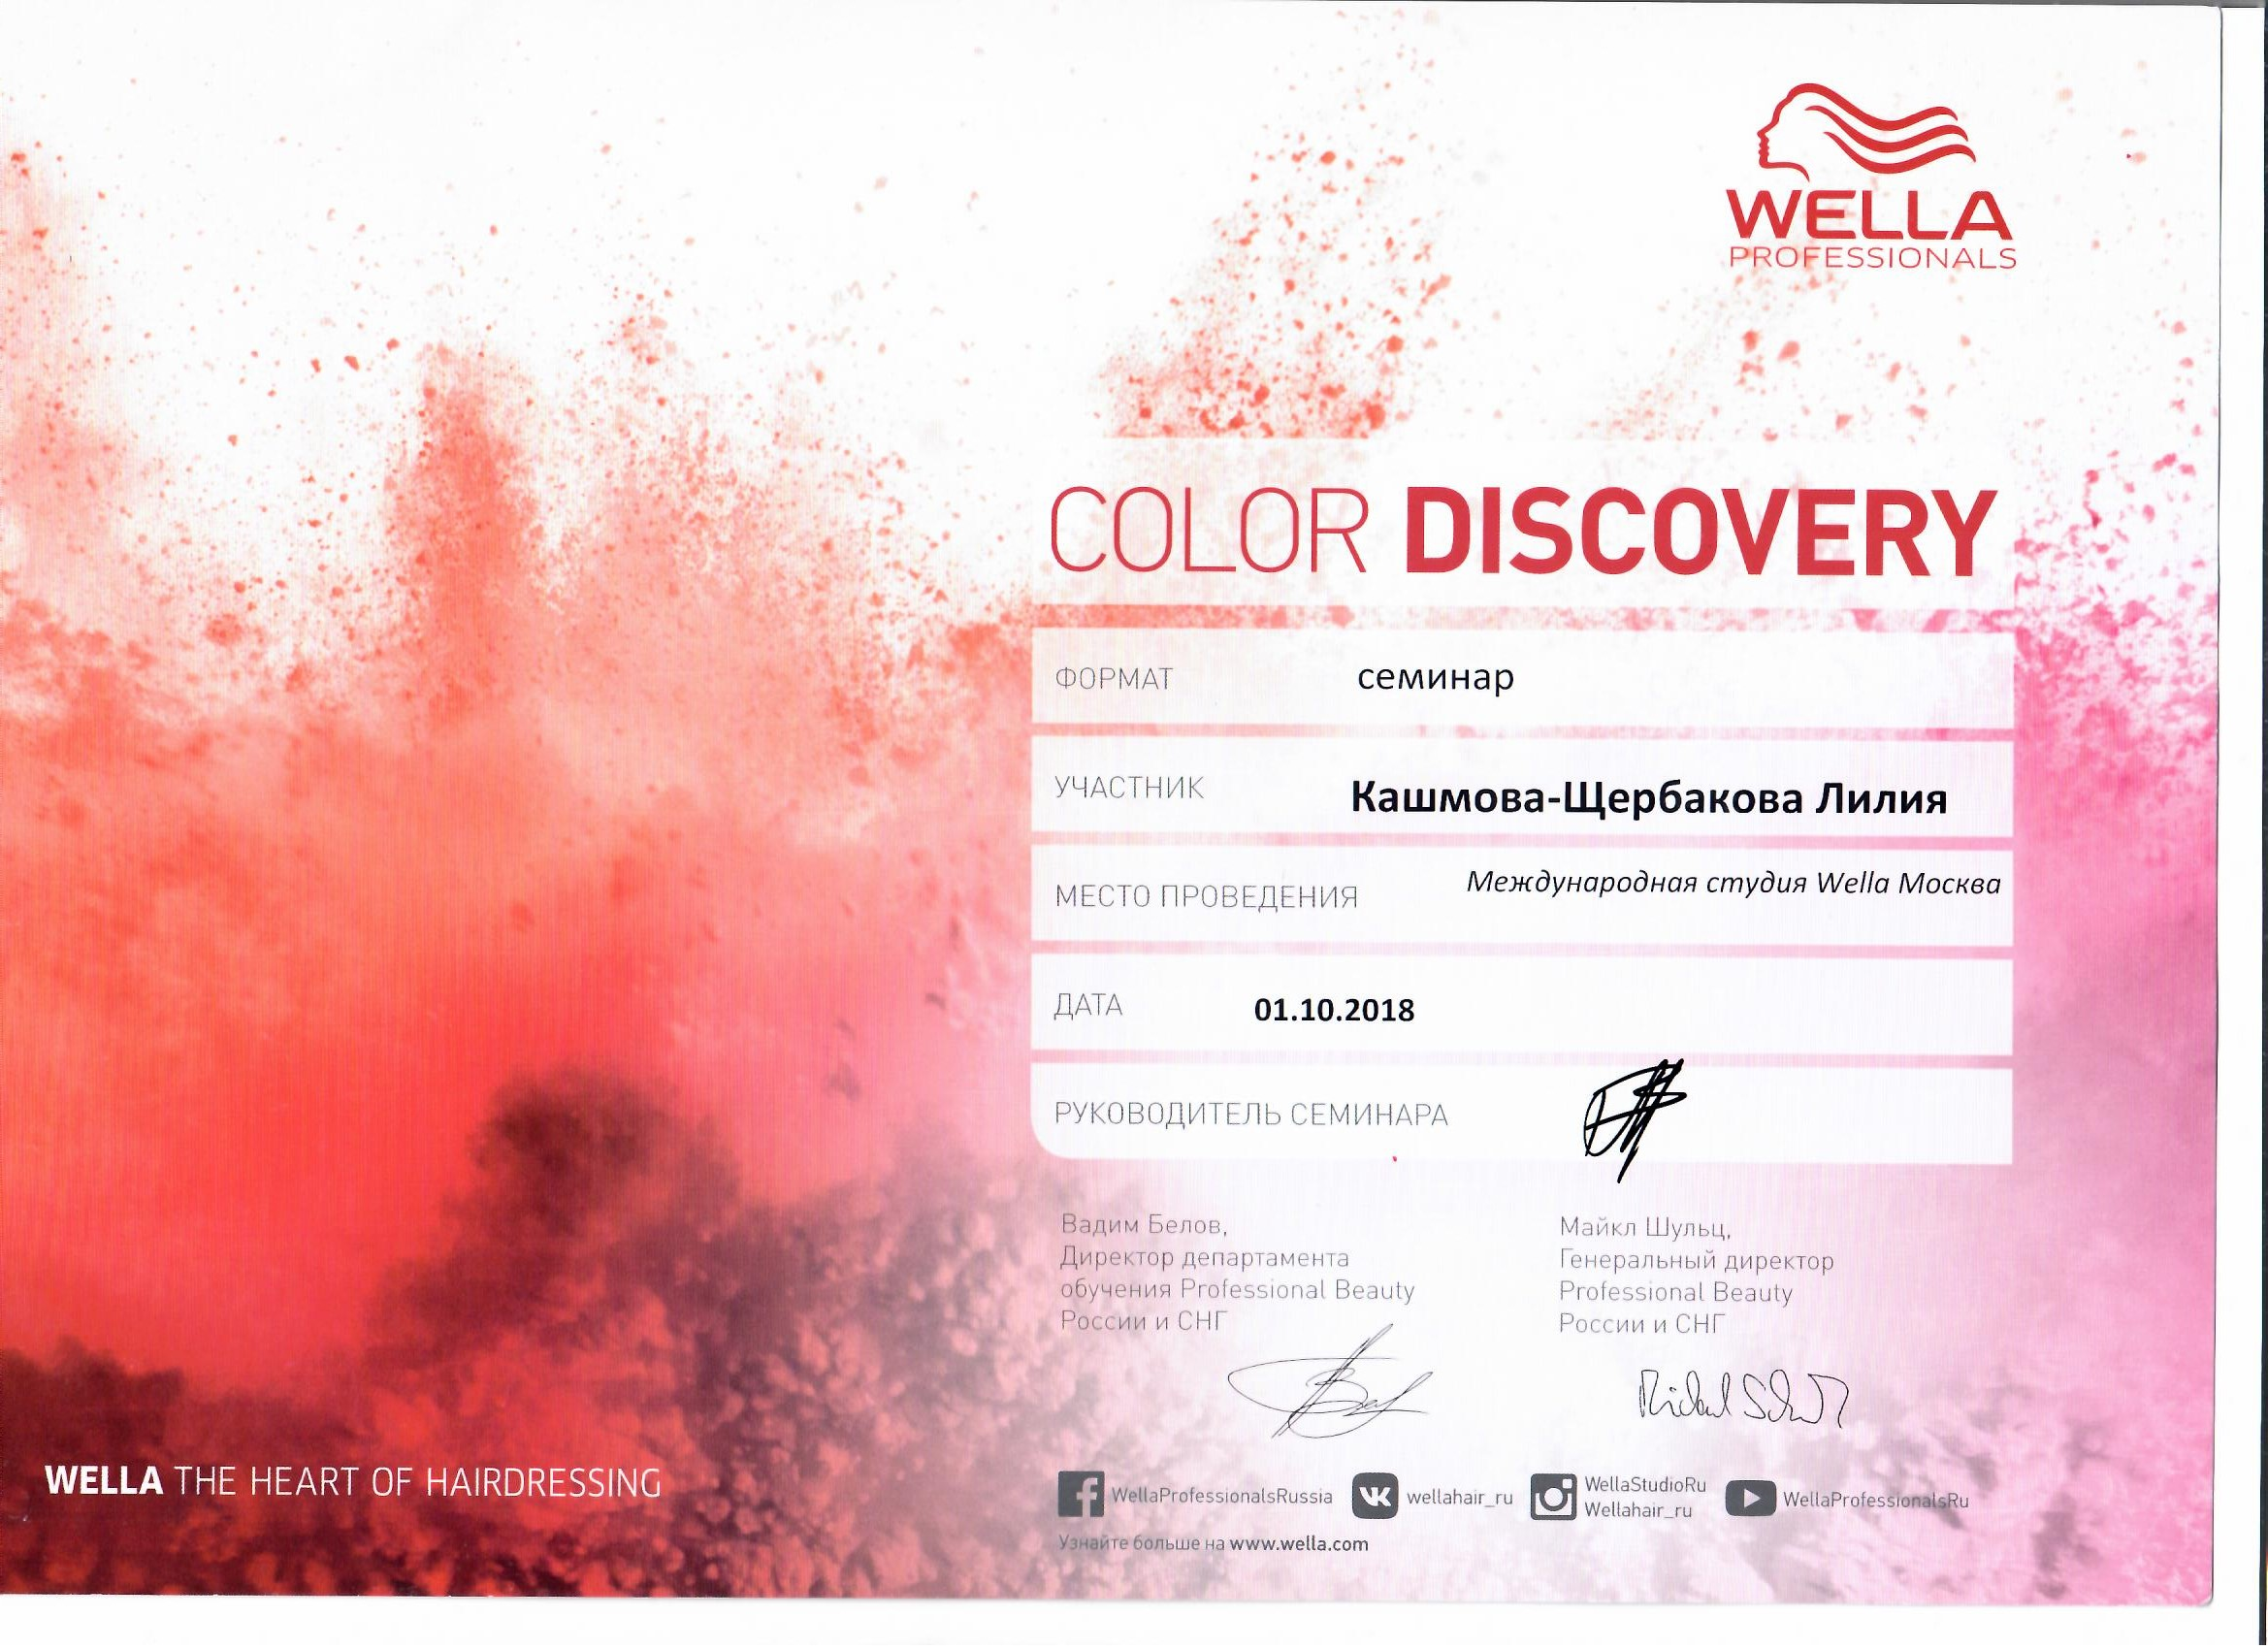 2018 color discovery wella